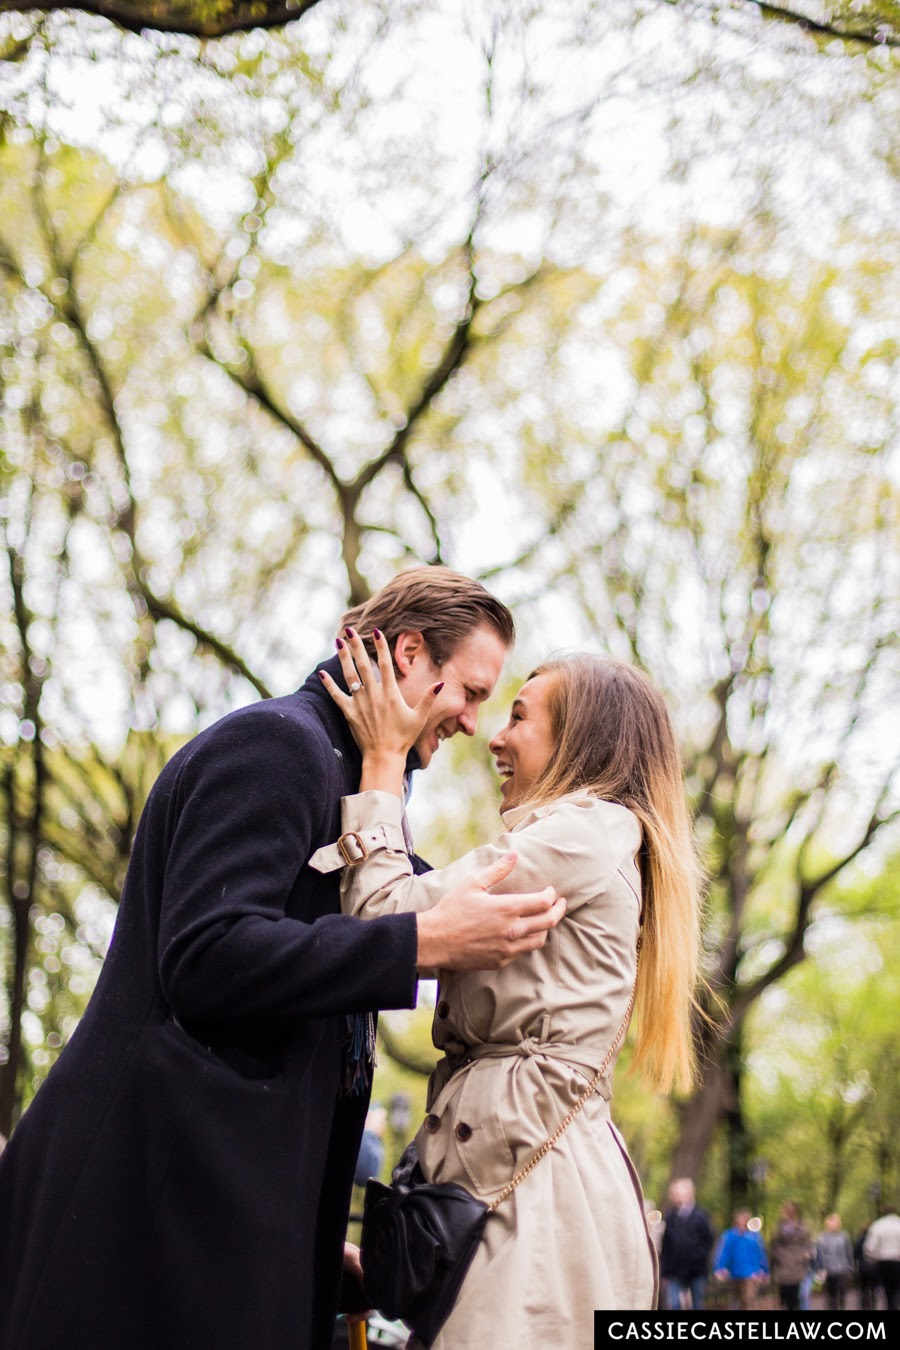 Newly Engaged, romantic destination proposal in Central Park under American Elm trees of The Mall - www.cassiecastellaw.com